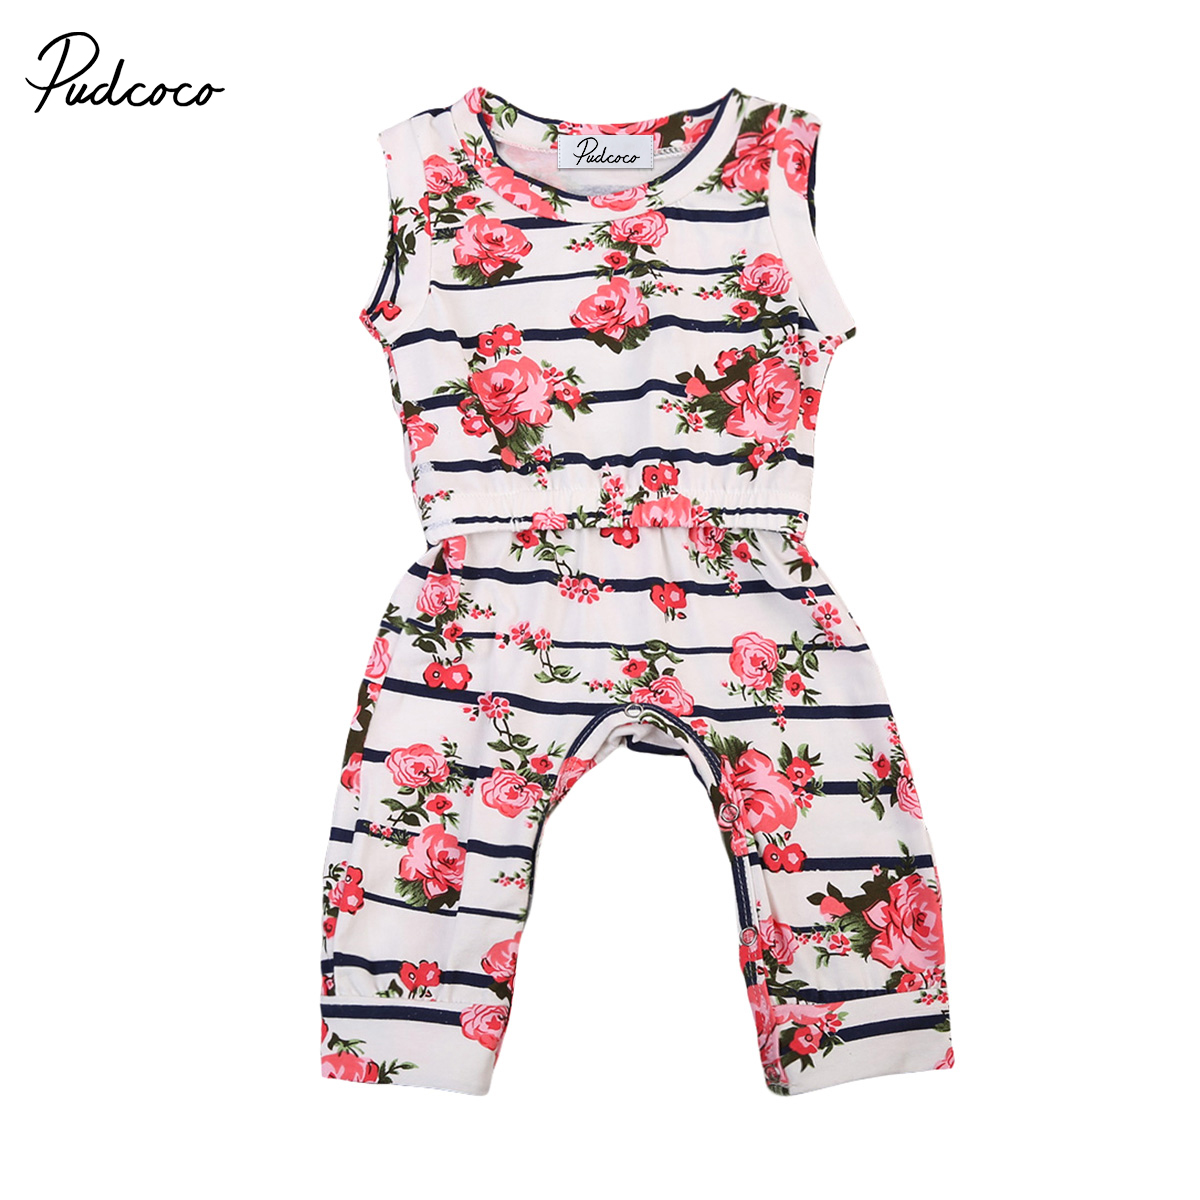 Pudcoco Newborn Infant Baby Girl Kids Floral Romper Sleeve Jumpsuit Long Pants One-Piece Clothes Outfit Onepiece